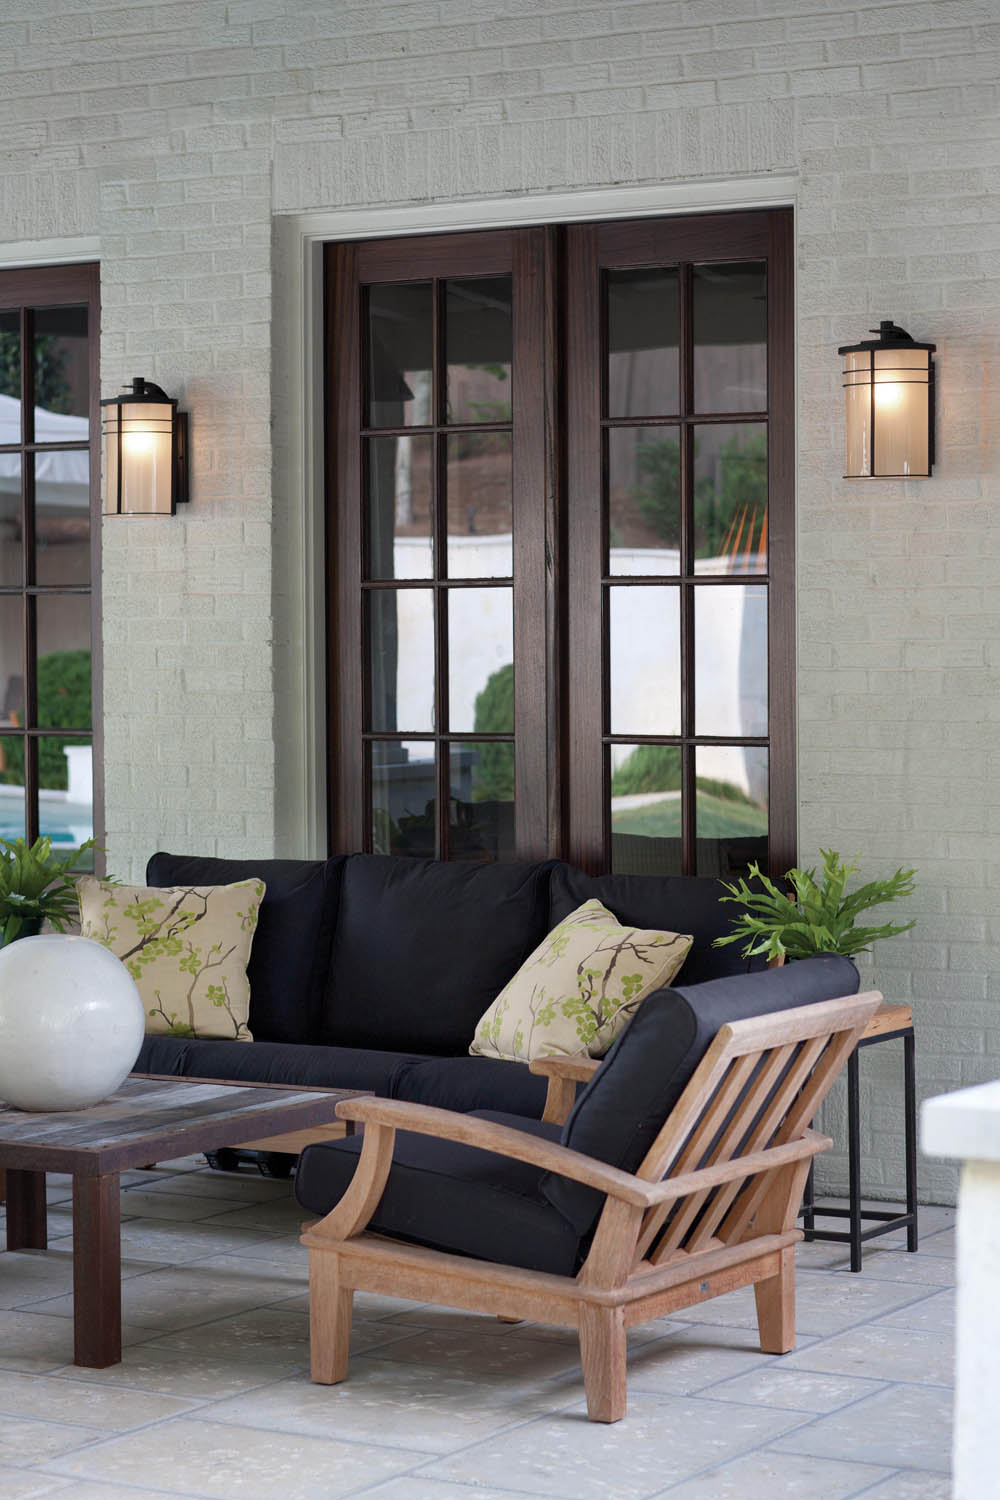 Selecting Outdoor Lighting With Hinkley Rue